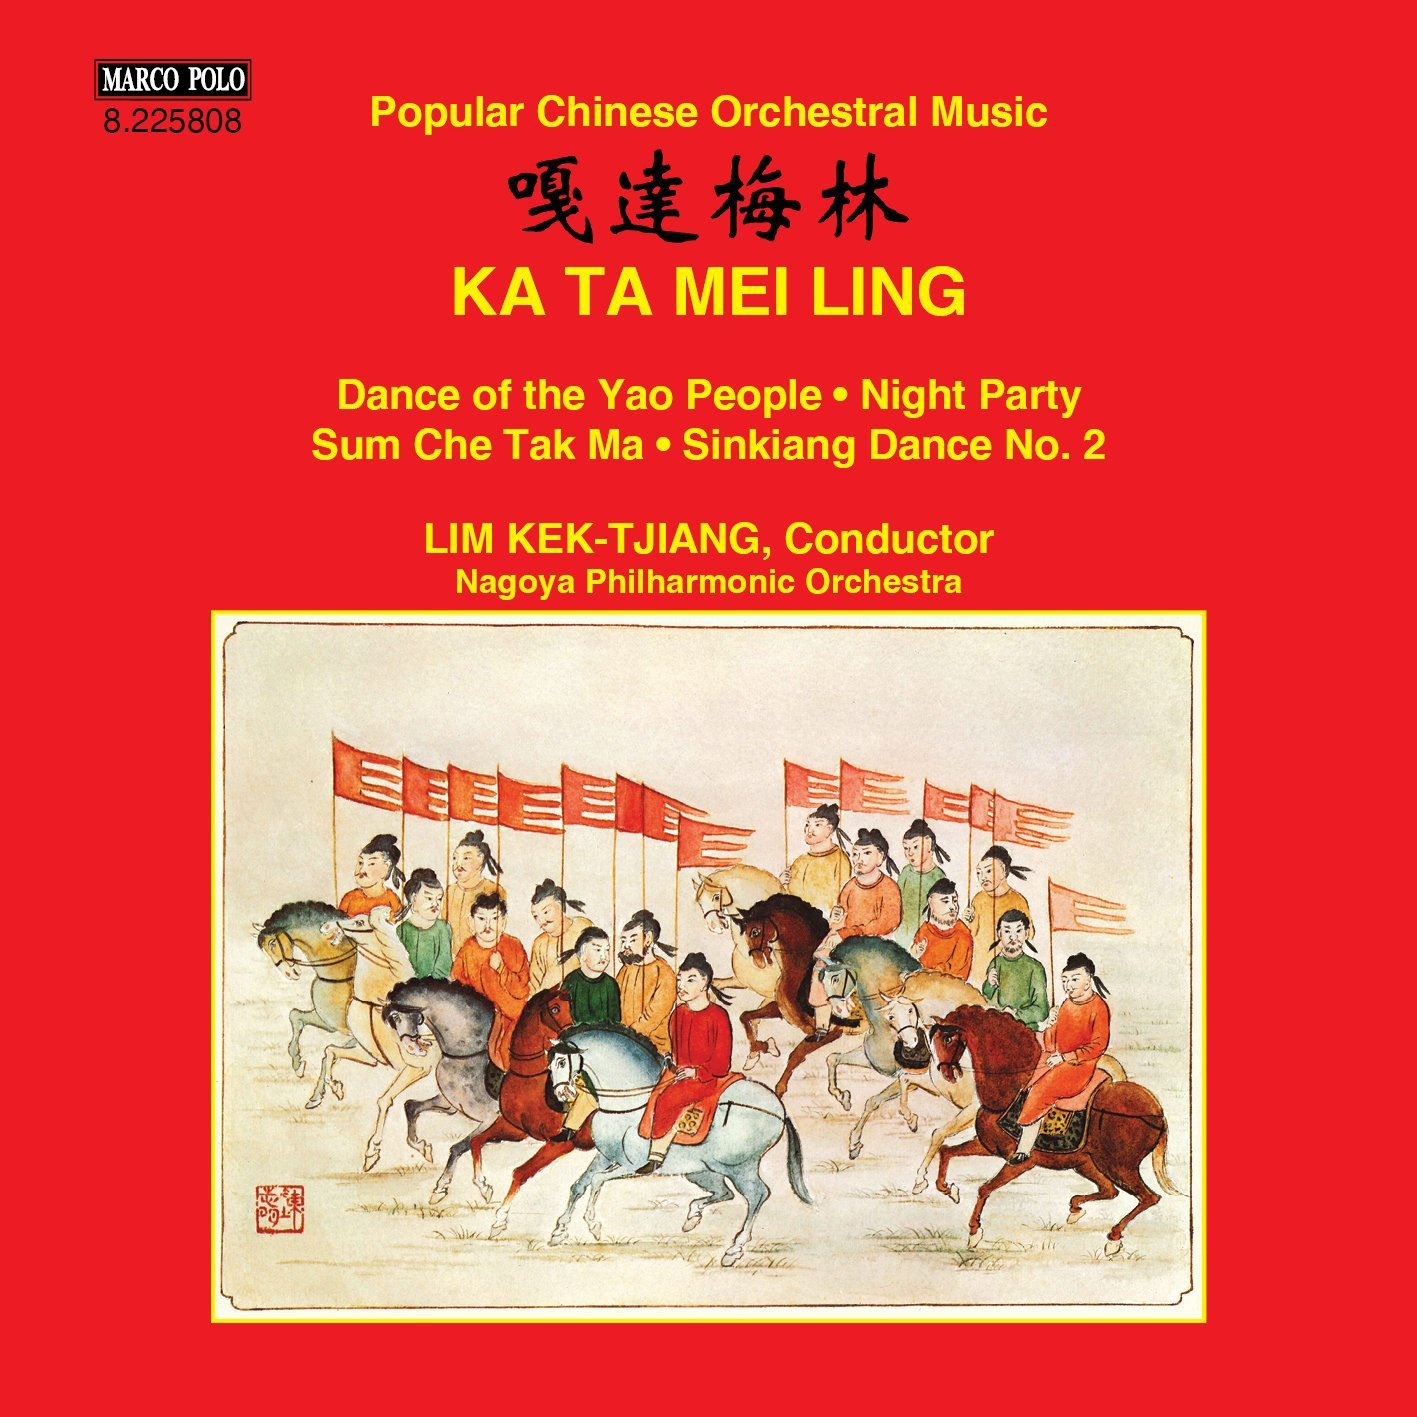 Popular Chinese Orchestral Music